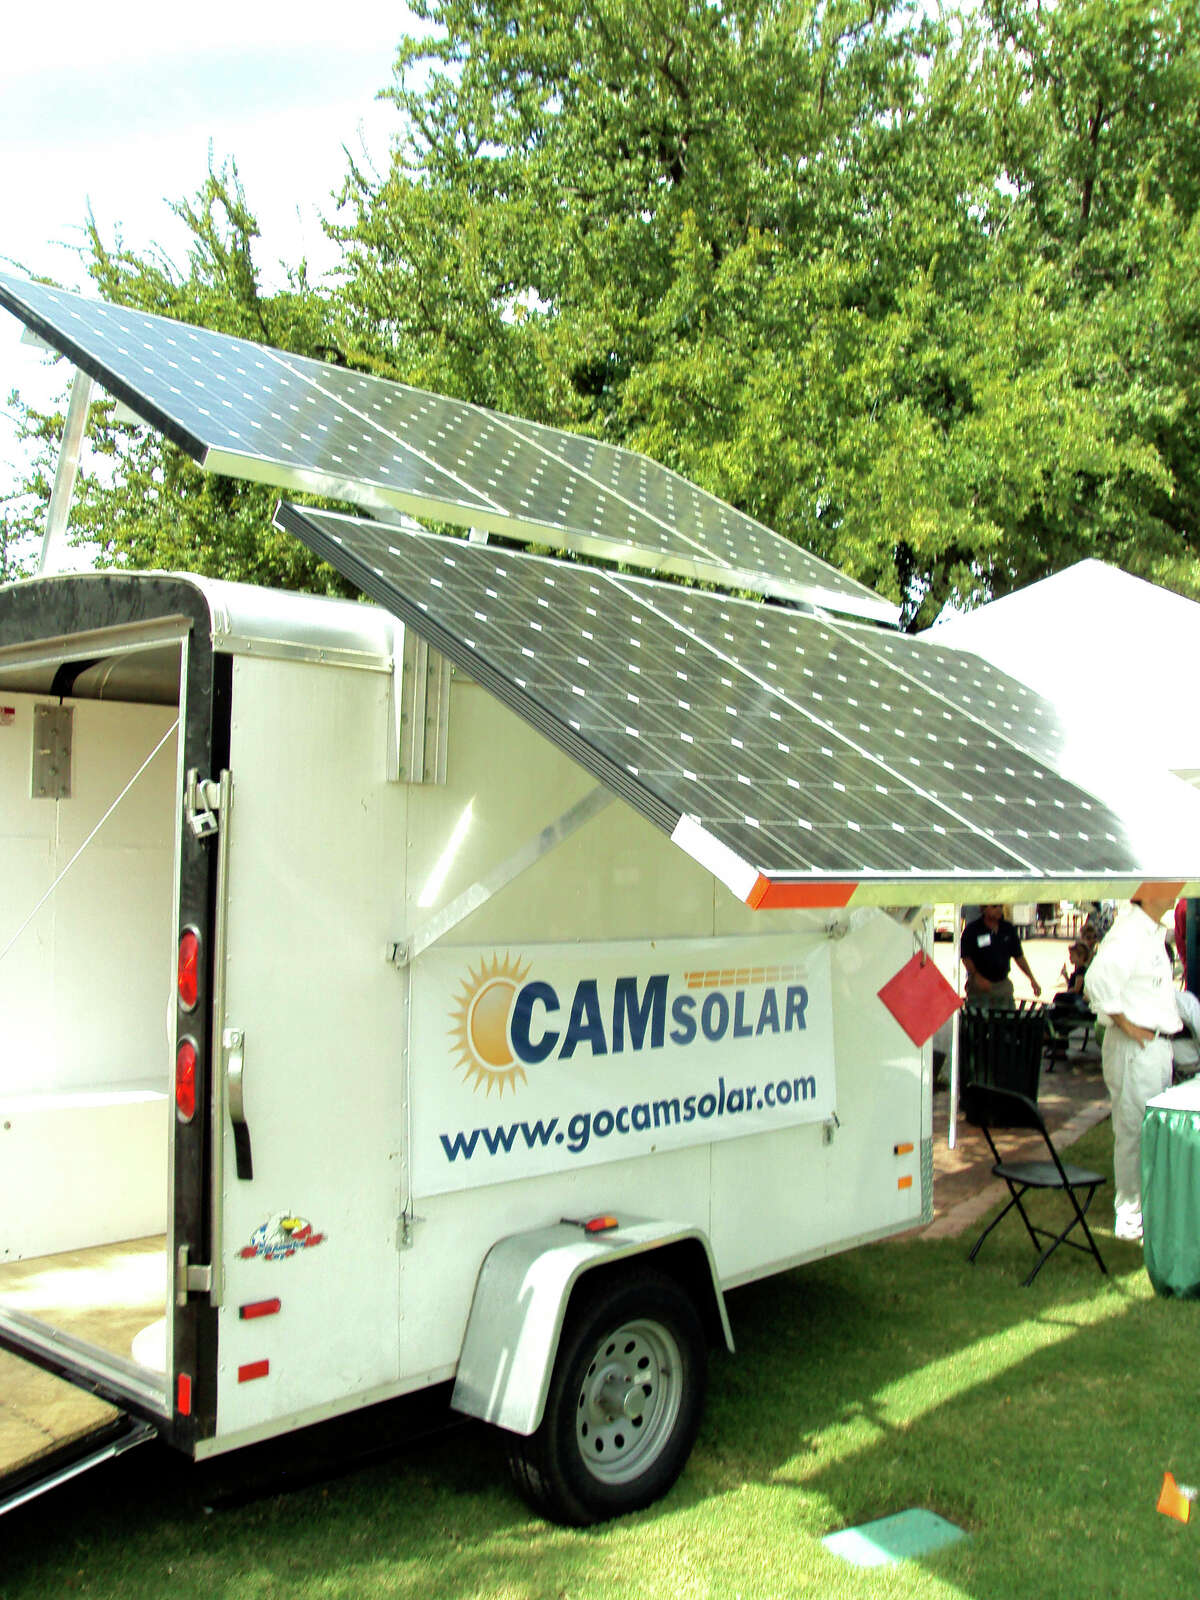 The president of CAM Solar has offered a $2,500 reward for information about this trailer.